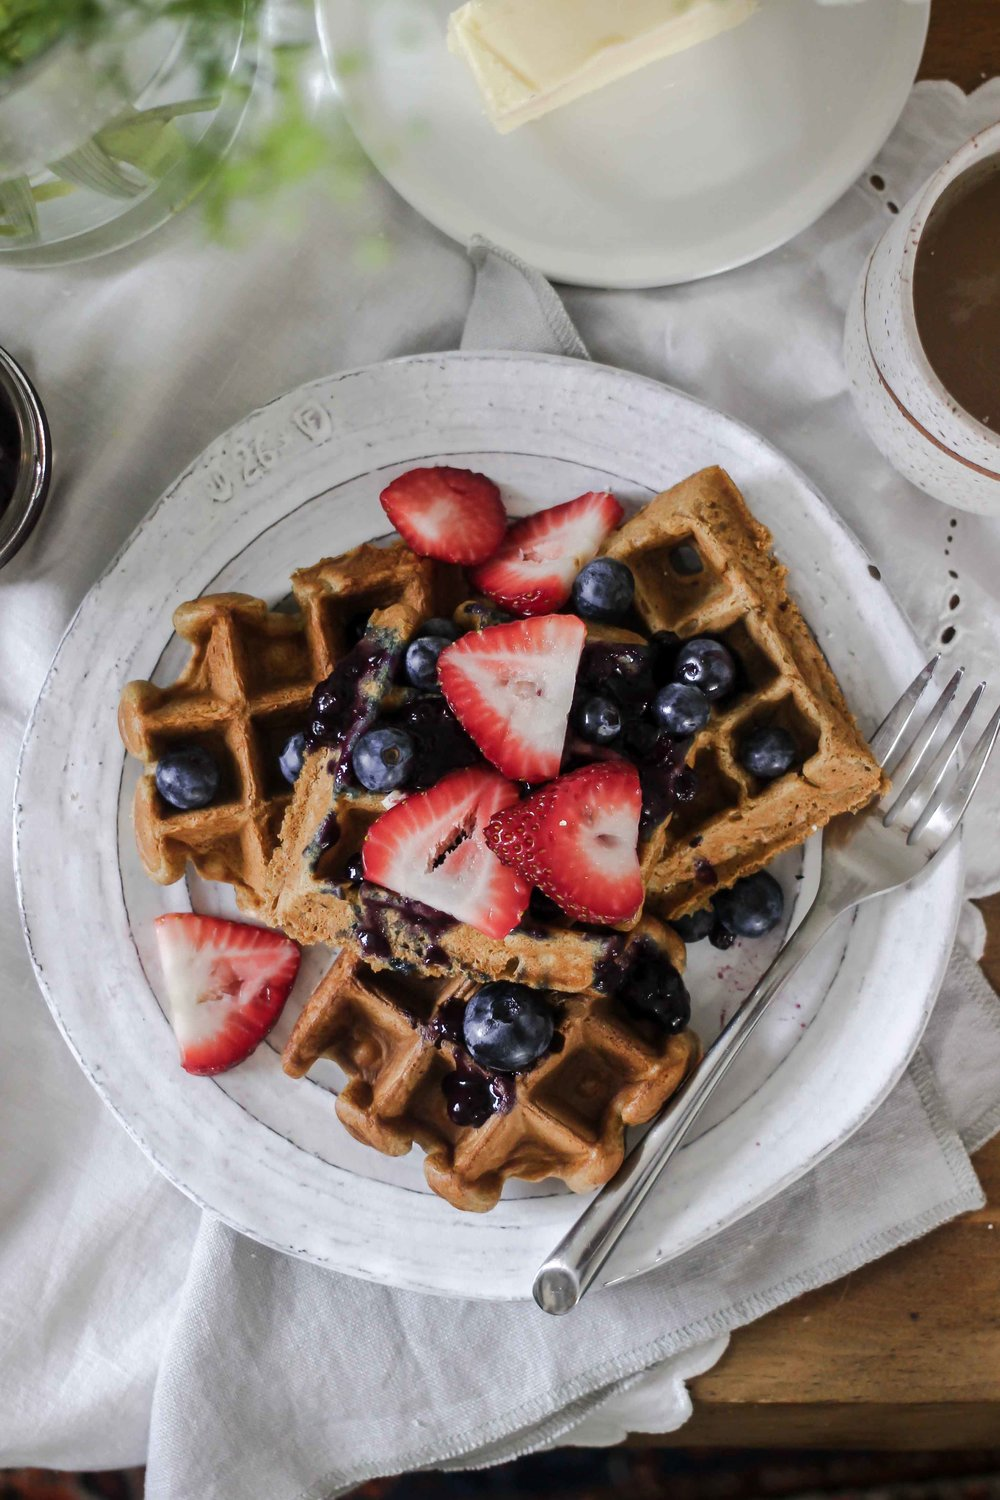 How To Prioritize Slow Living In A Fast Paced World + Fluffy Gluten Free Oat & Yogurt Belgian Waffles - The Well Essentials & Green Valley Organics